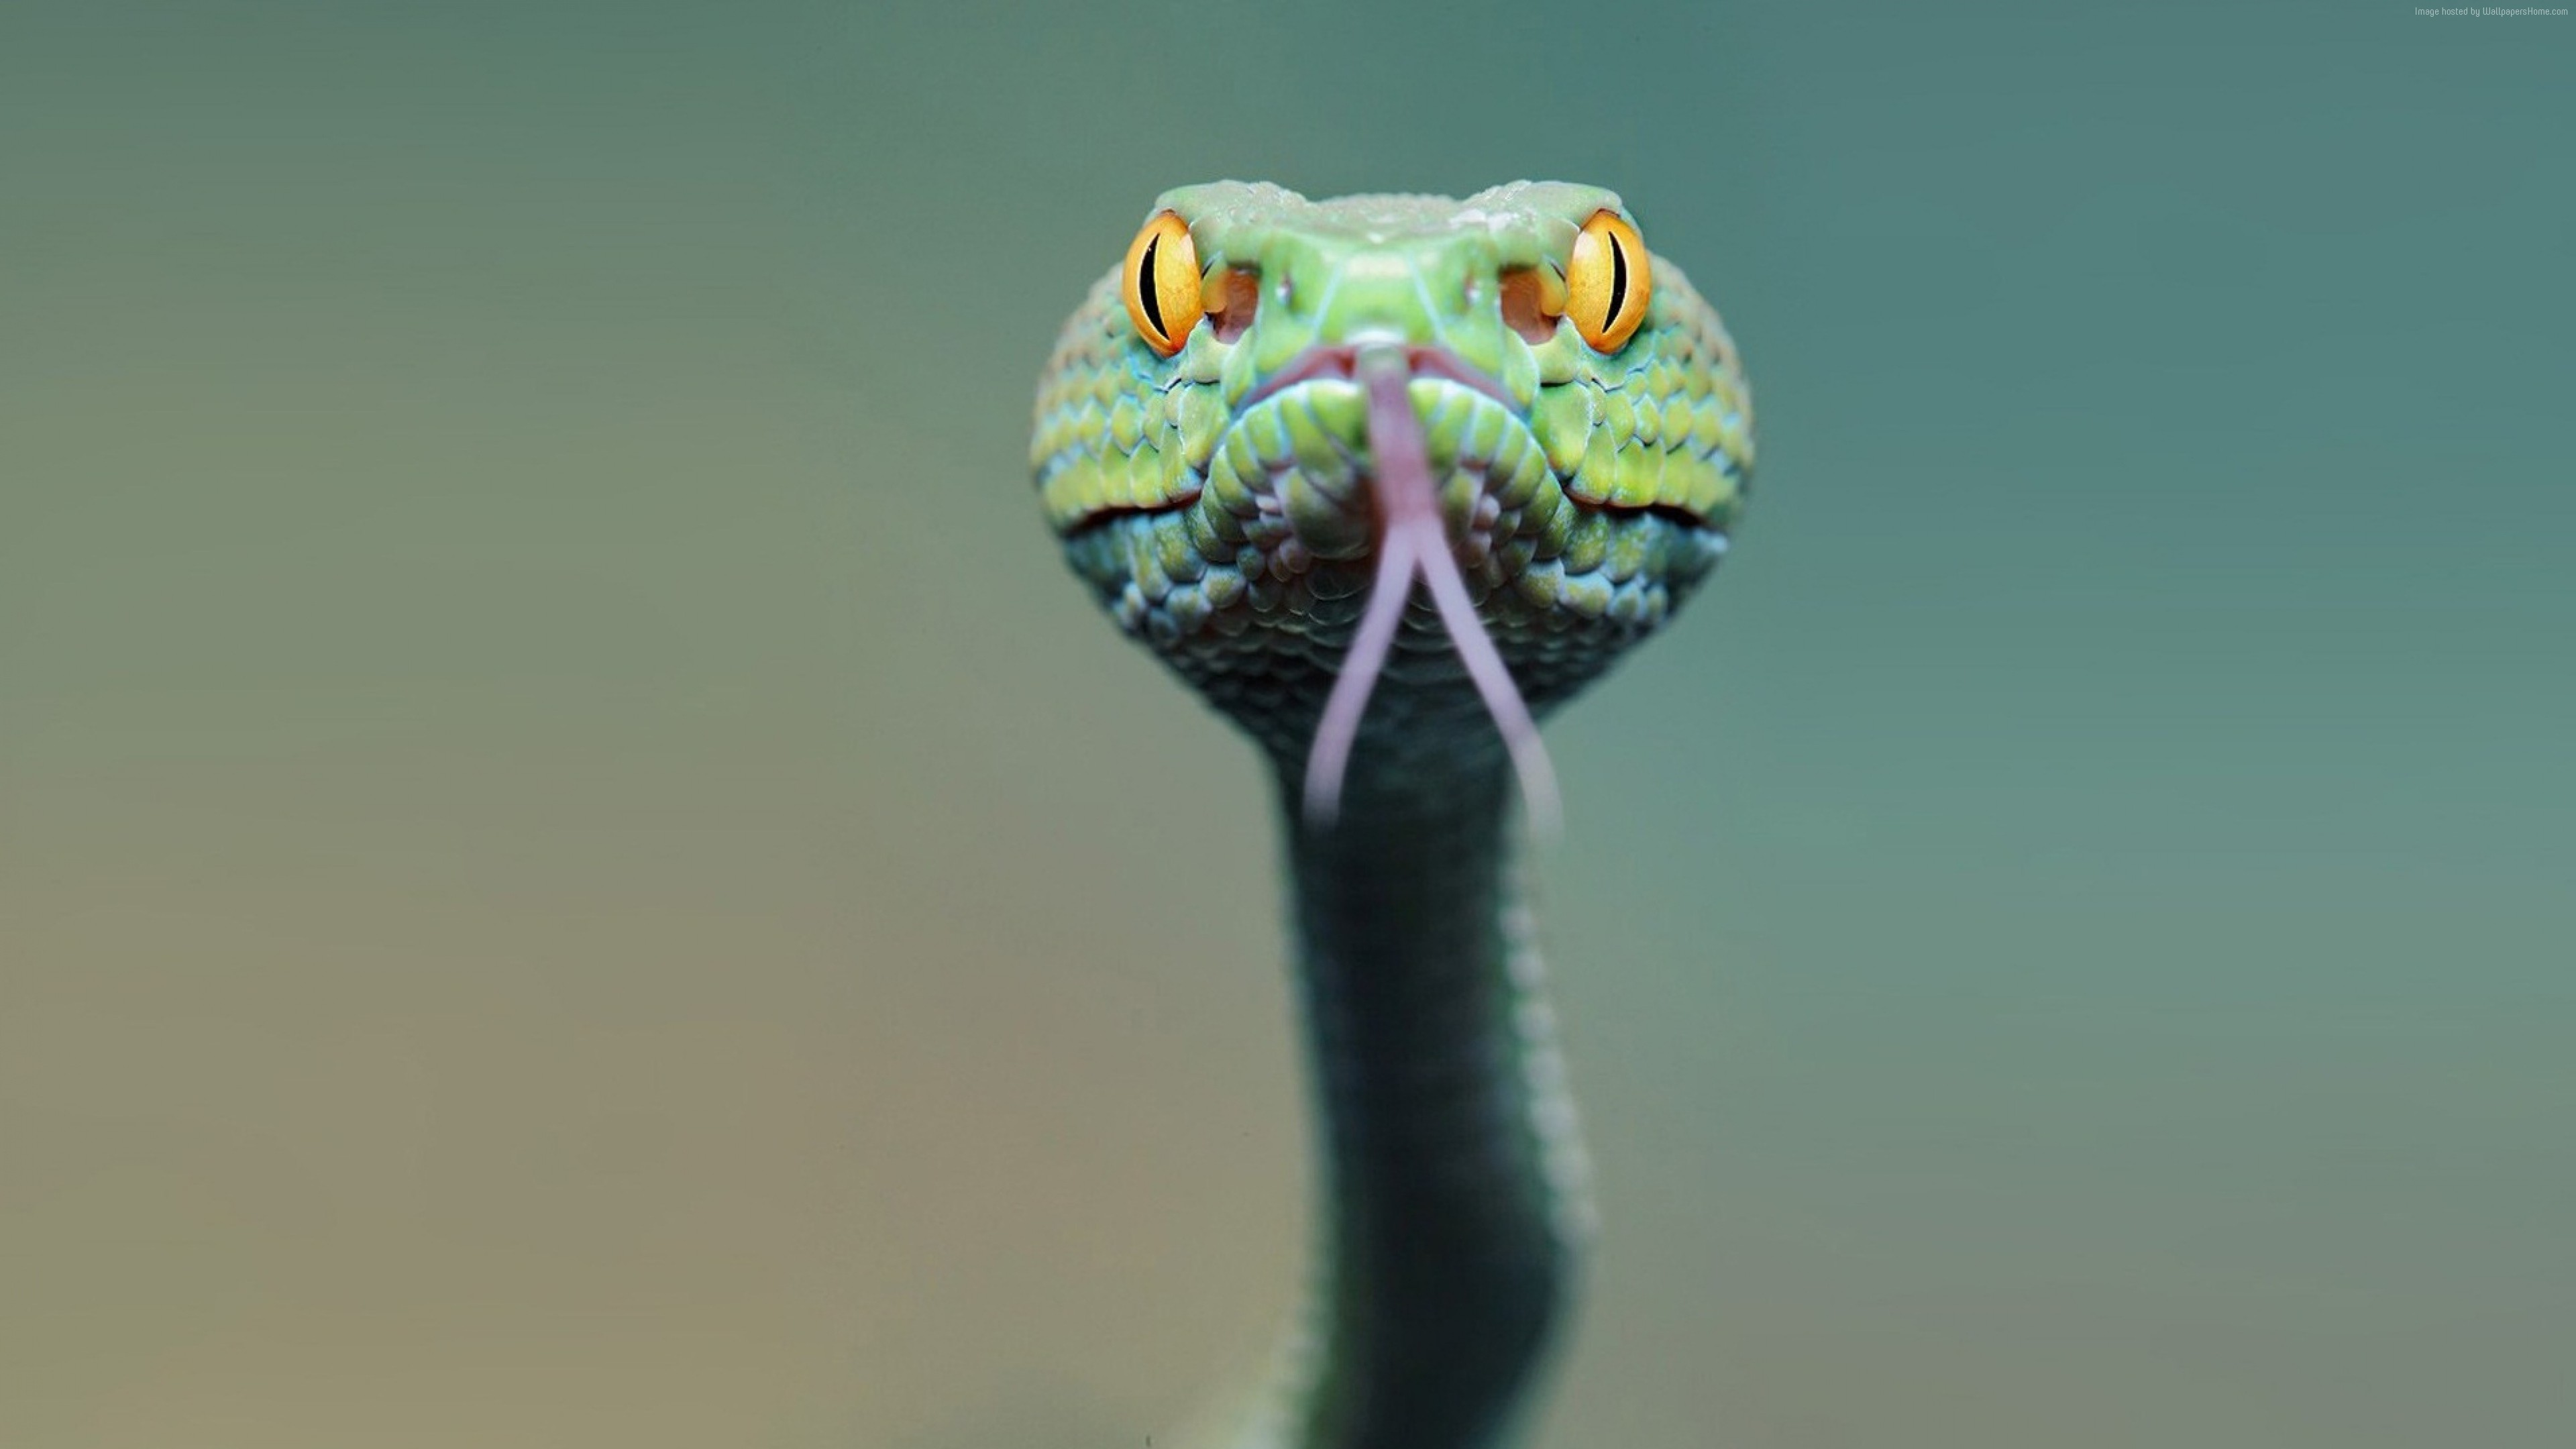 Snake Face From Front 2273908 Hd Wallpaper